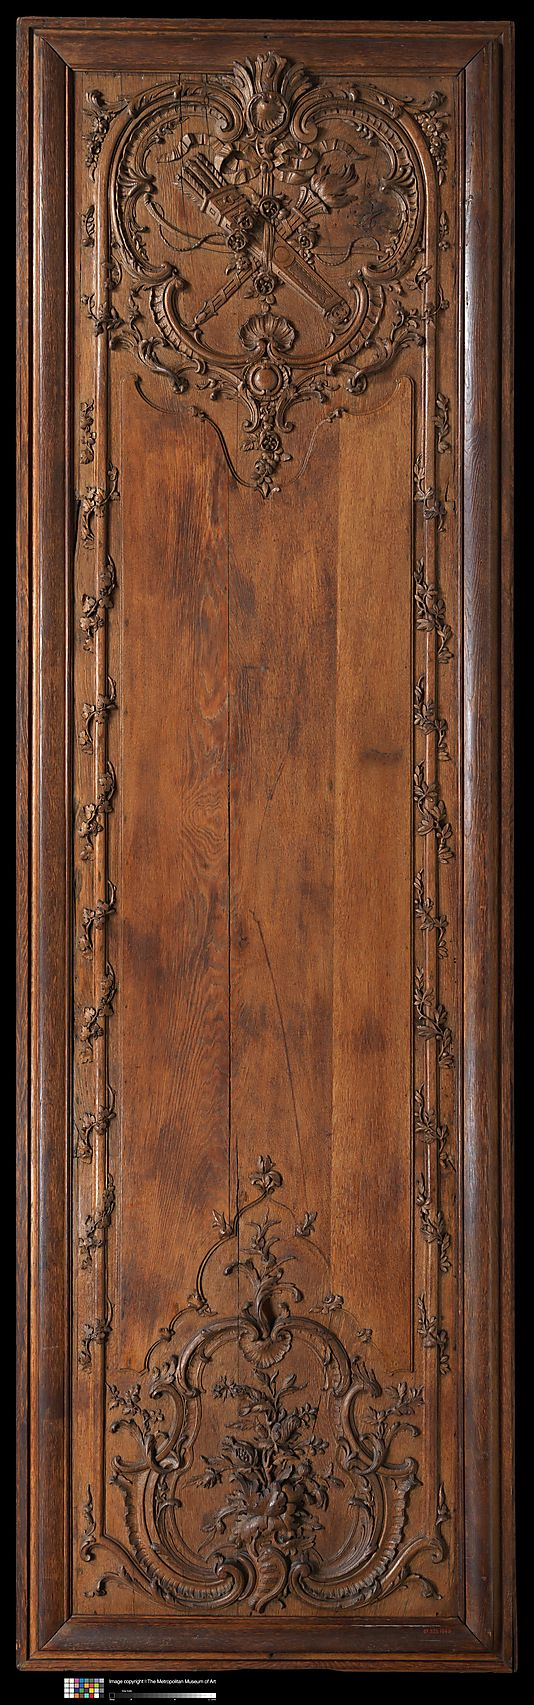 One of a Pair of Carved Oak Panels - 1700–1735,  French  Dimensions: Overall : 125 3/4 x 37 3/4 x 3 1/2 in.    at The Met